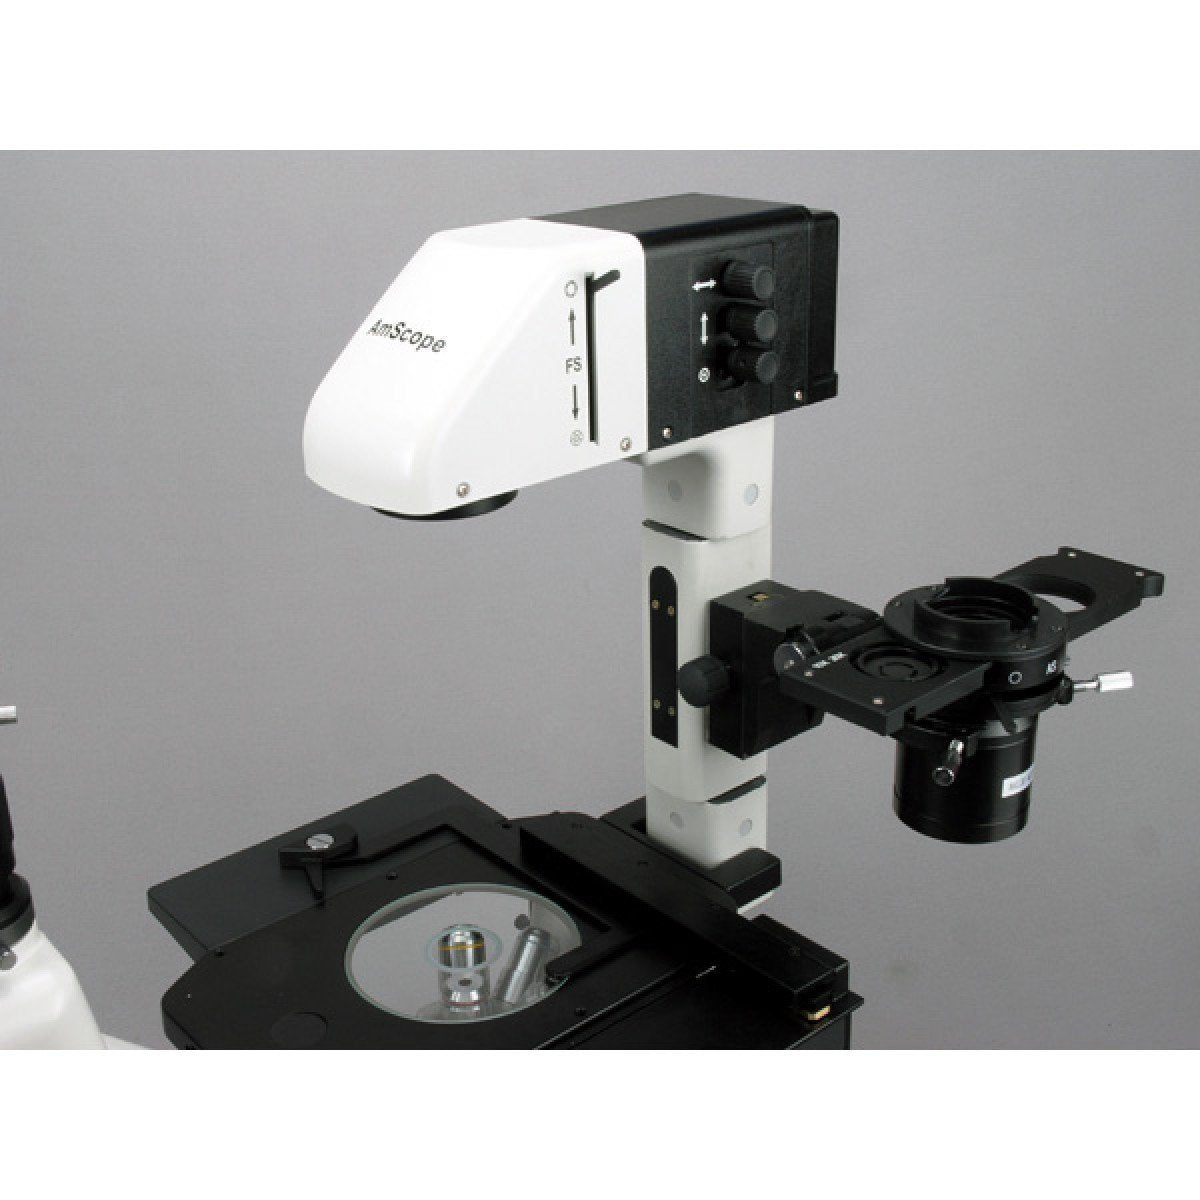 AmScope 40X-900X Phase Contrast Fluorescence Inverted Microscope - IN480TA-FL